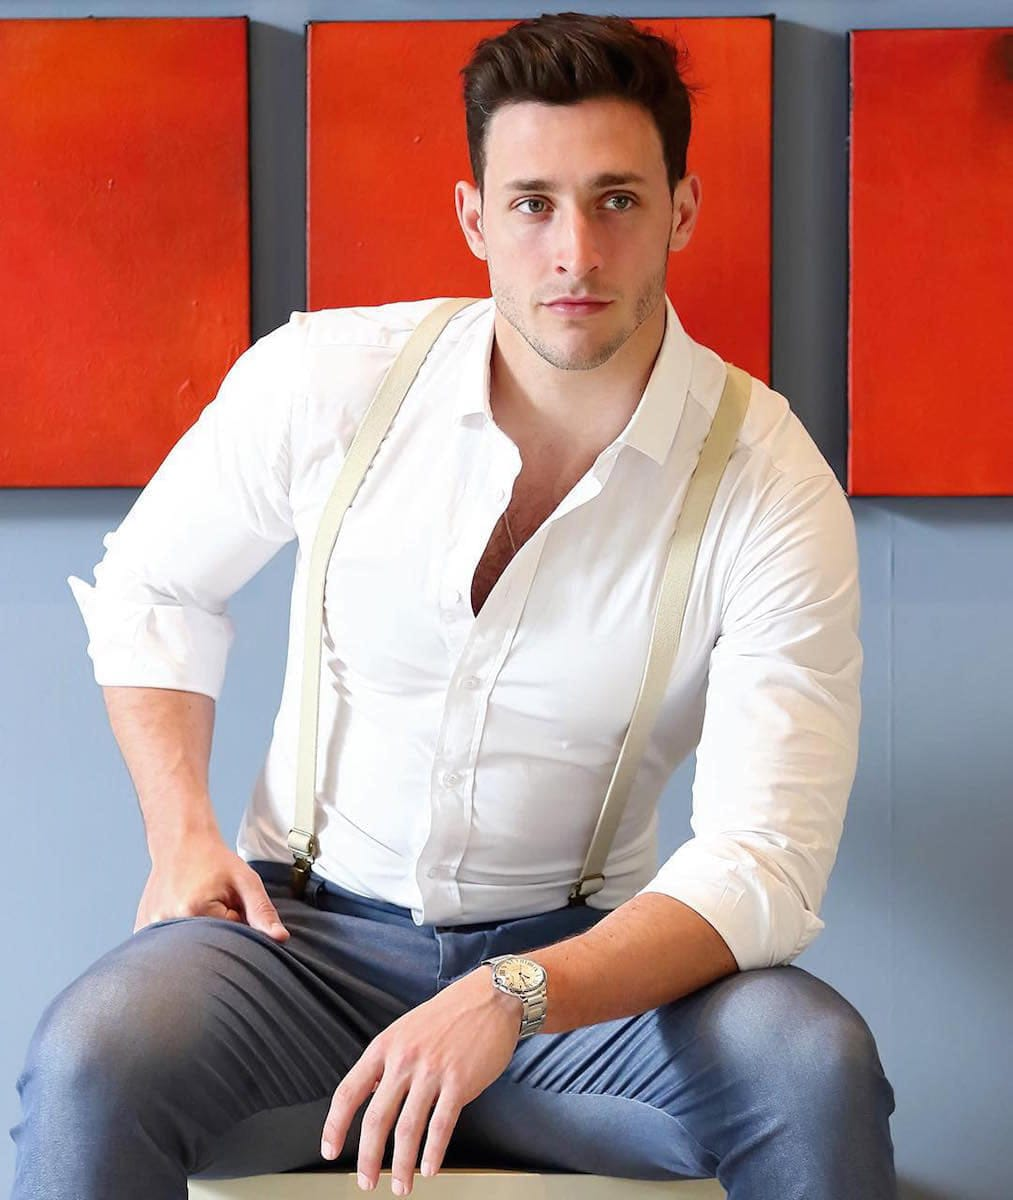 belle center single gay men Once you've connected with other users at oncom, you can utilize our app to follow, like, chat or message your new friends to build relationships.